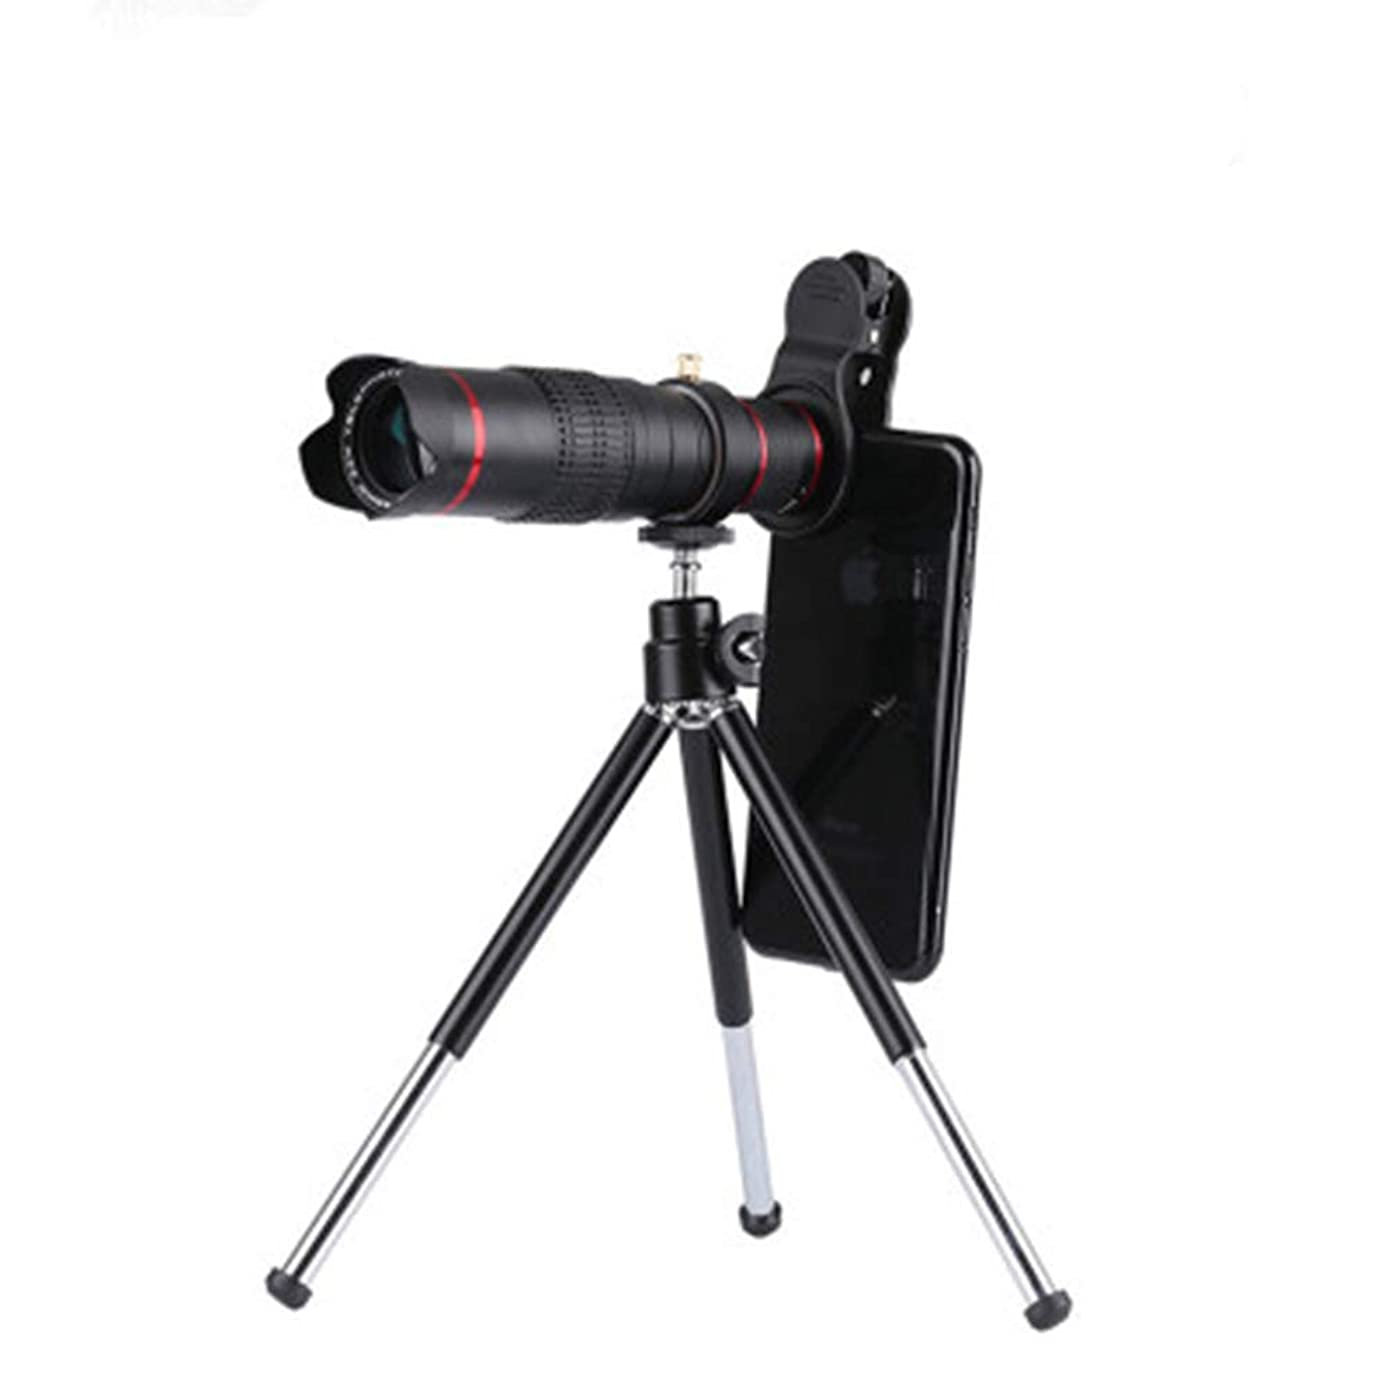 YAOkxin Cell Phone Lens, 22X Zoom Telephoto Lens, Clip-On HD Phone Camera Lens with Tripod for iPhone Xs Max XR X 8 7 Plus, for Samsung Galaxy, Android Smartphones, Monocular Telescope (Black)